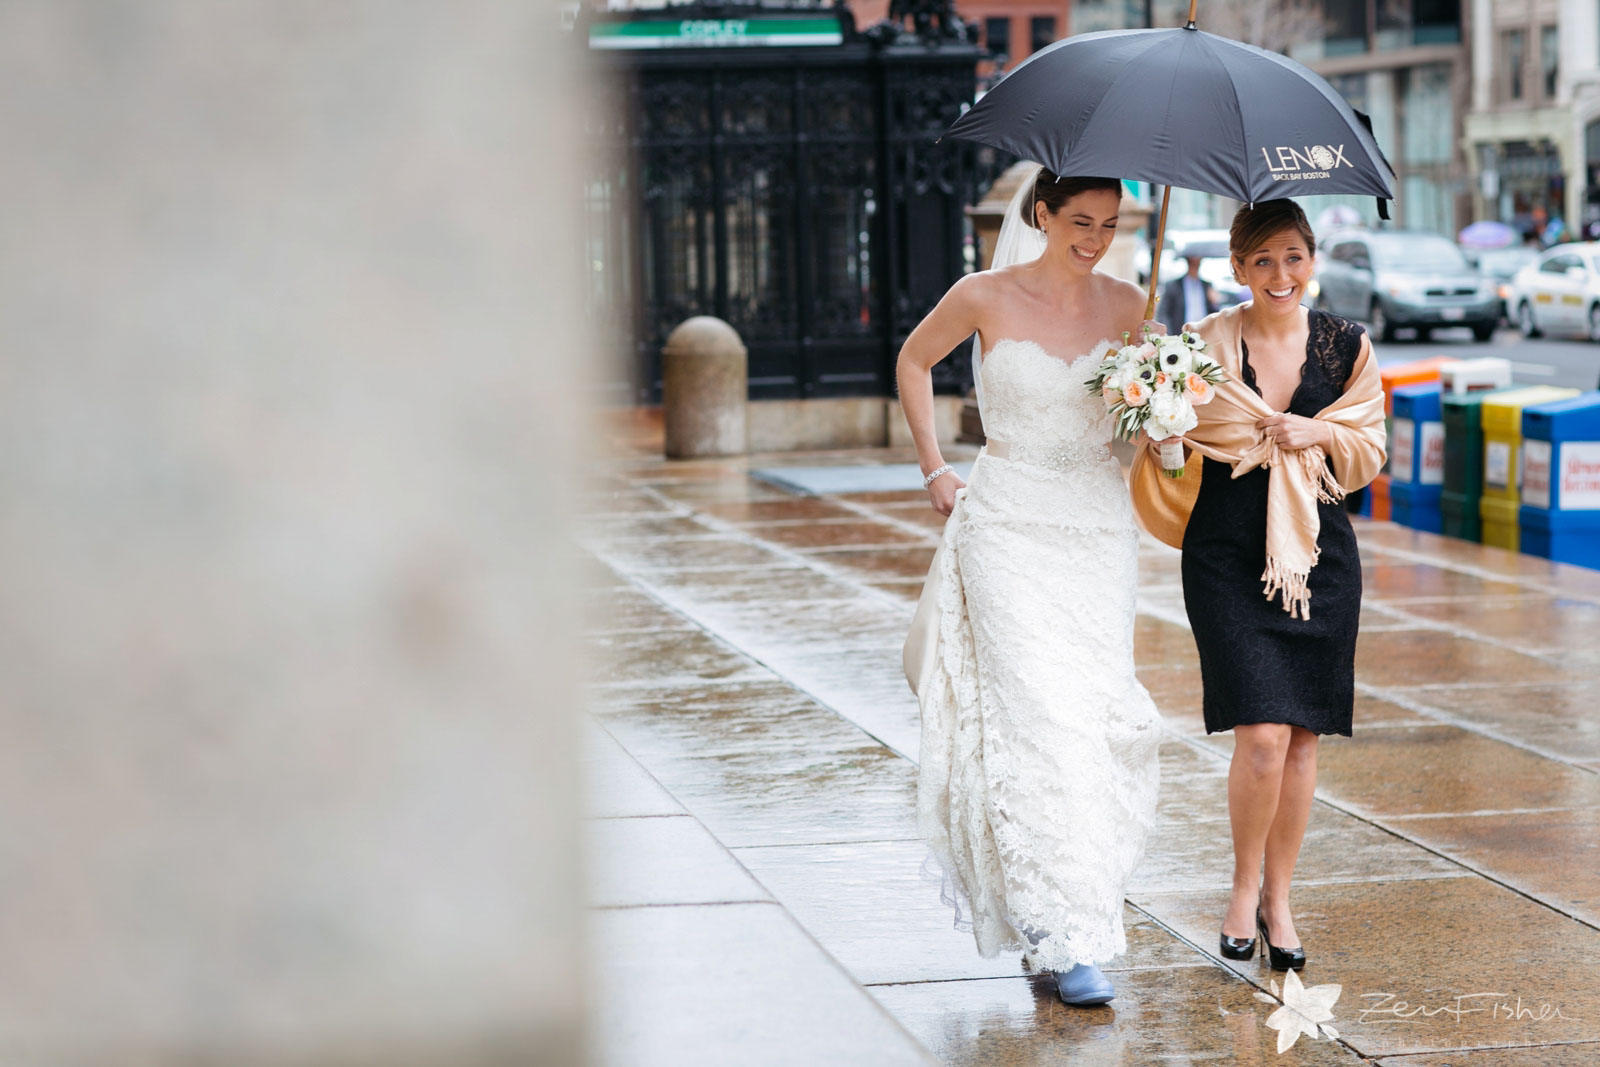 Peeking around the corner at bride and bridemaid walking down the street in the rain, laughing